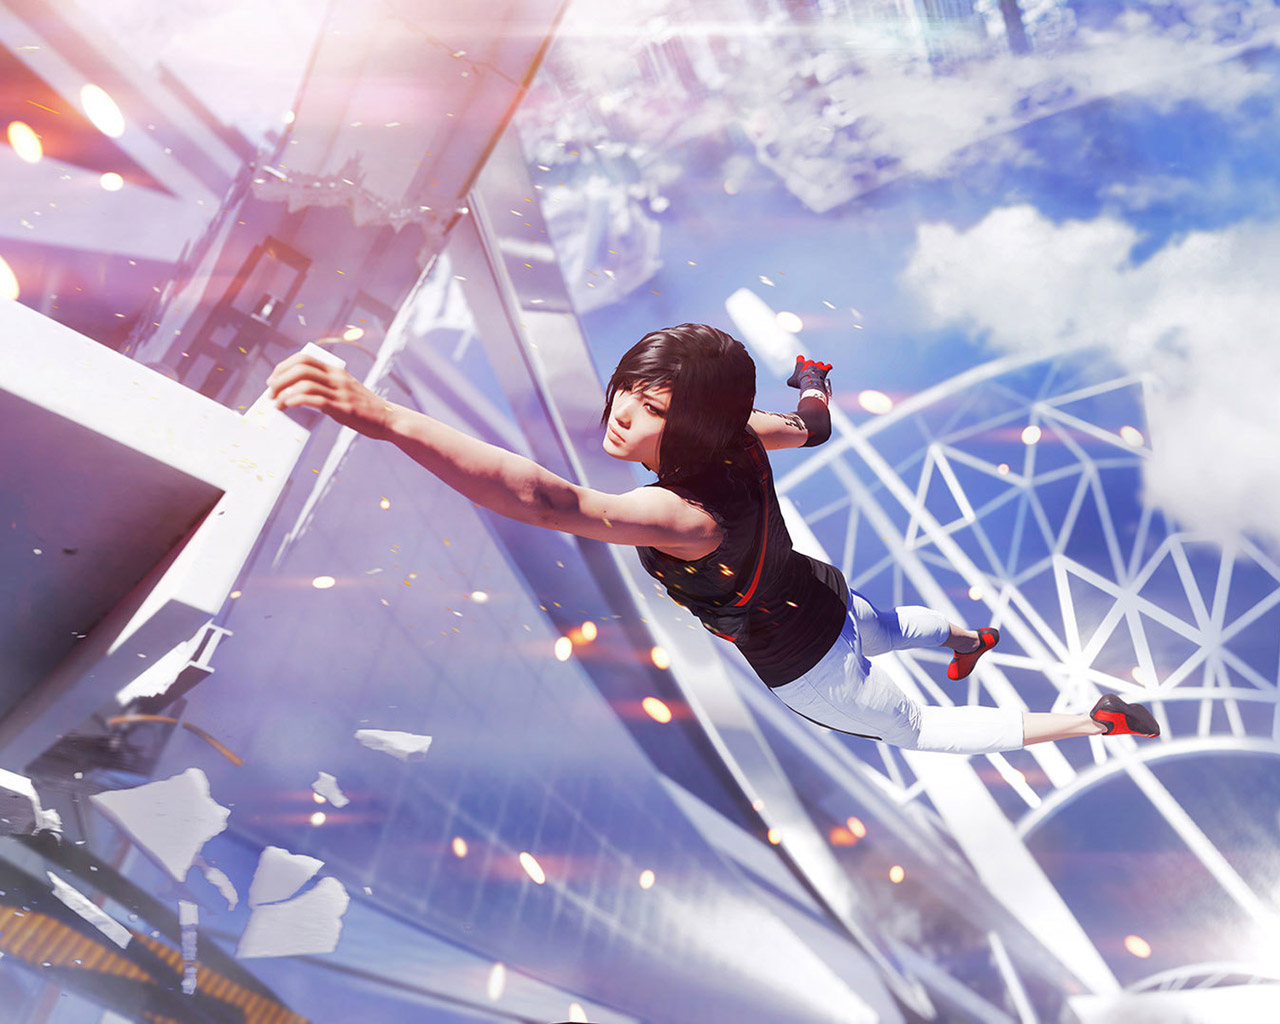 Mirror's Edge Catalyst Wallpaper in 1280x1024